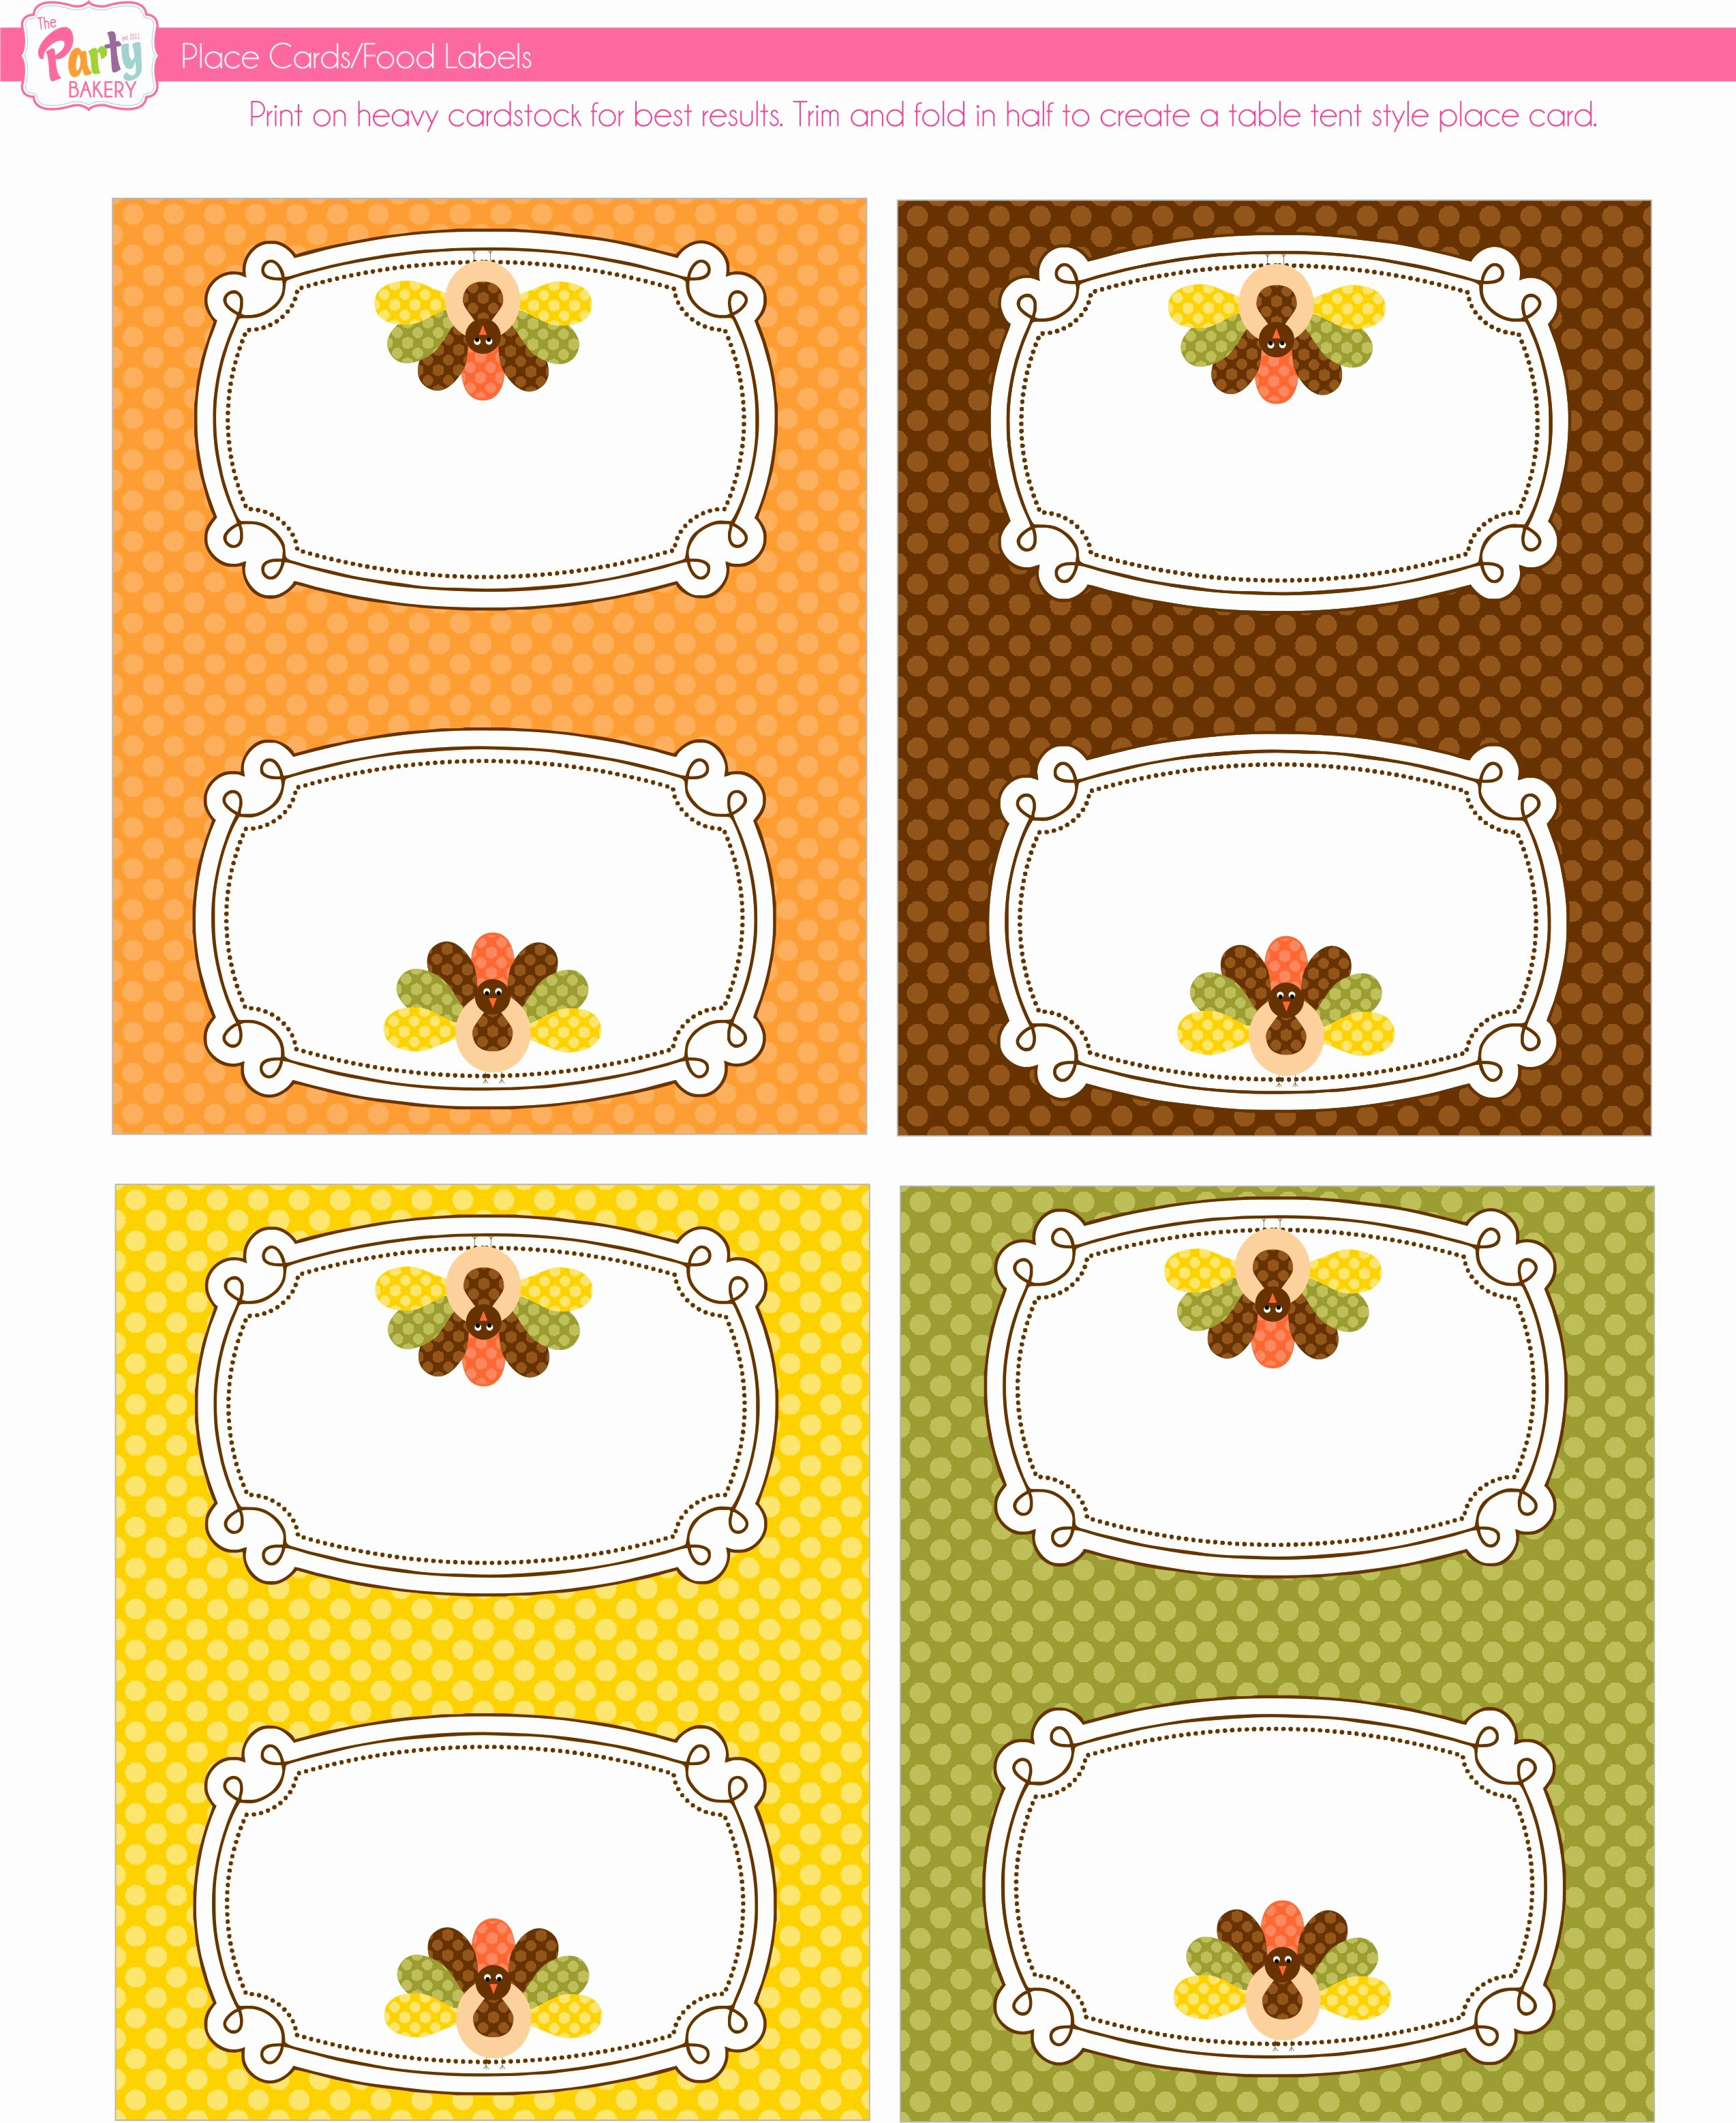 Free Printable Thanksgiving Templates Of  Best Of Printable Sheets For Thanksgiving Place Cards Template